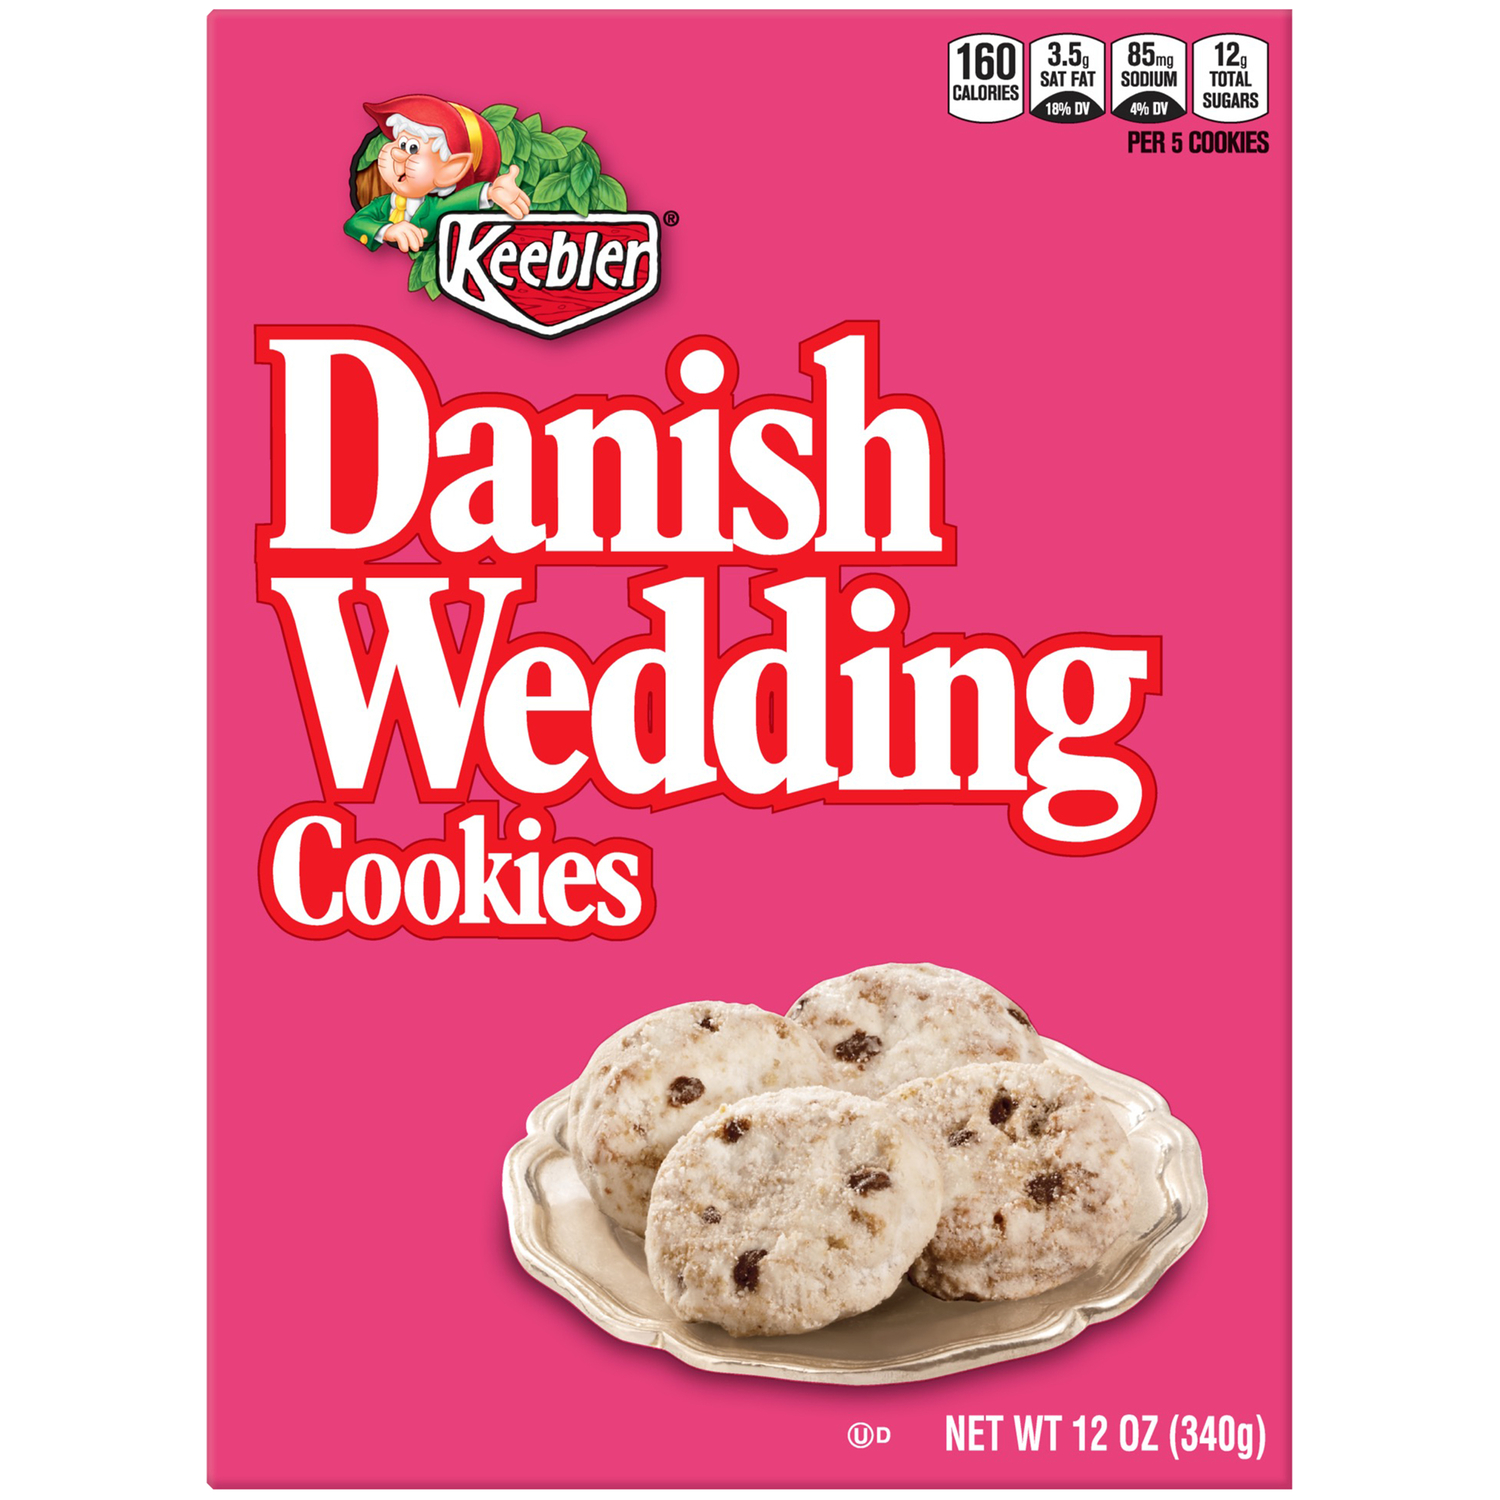 Keebler Danish Wedding Baked Cookies 12 Oz Tray Walmart Com Walmart Com